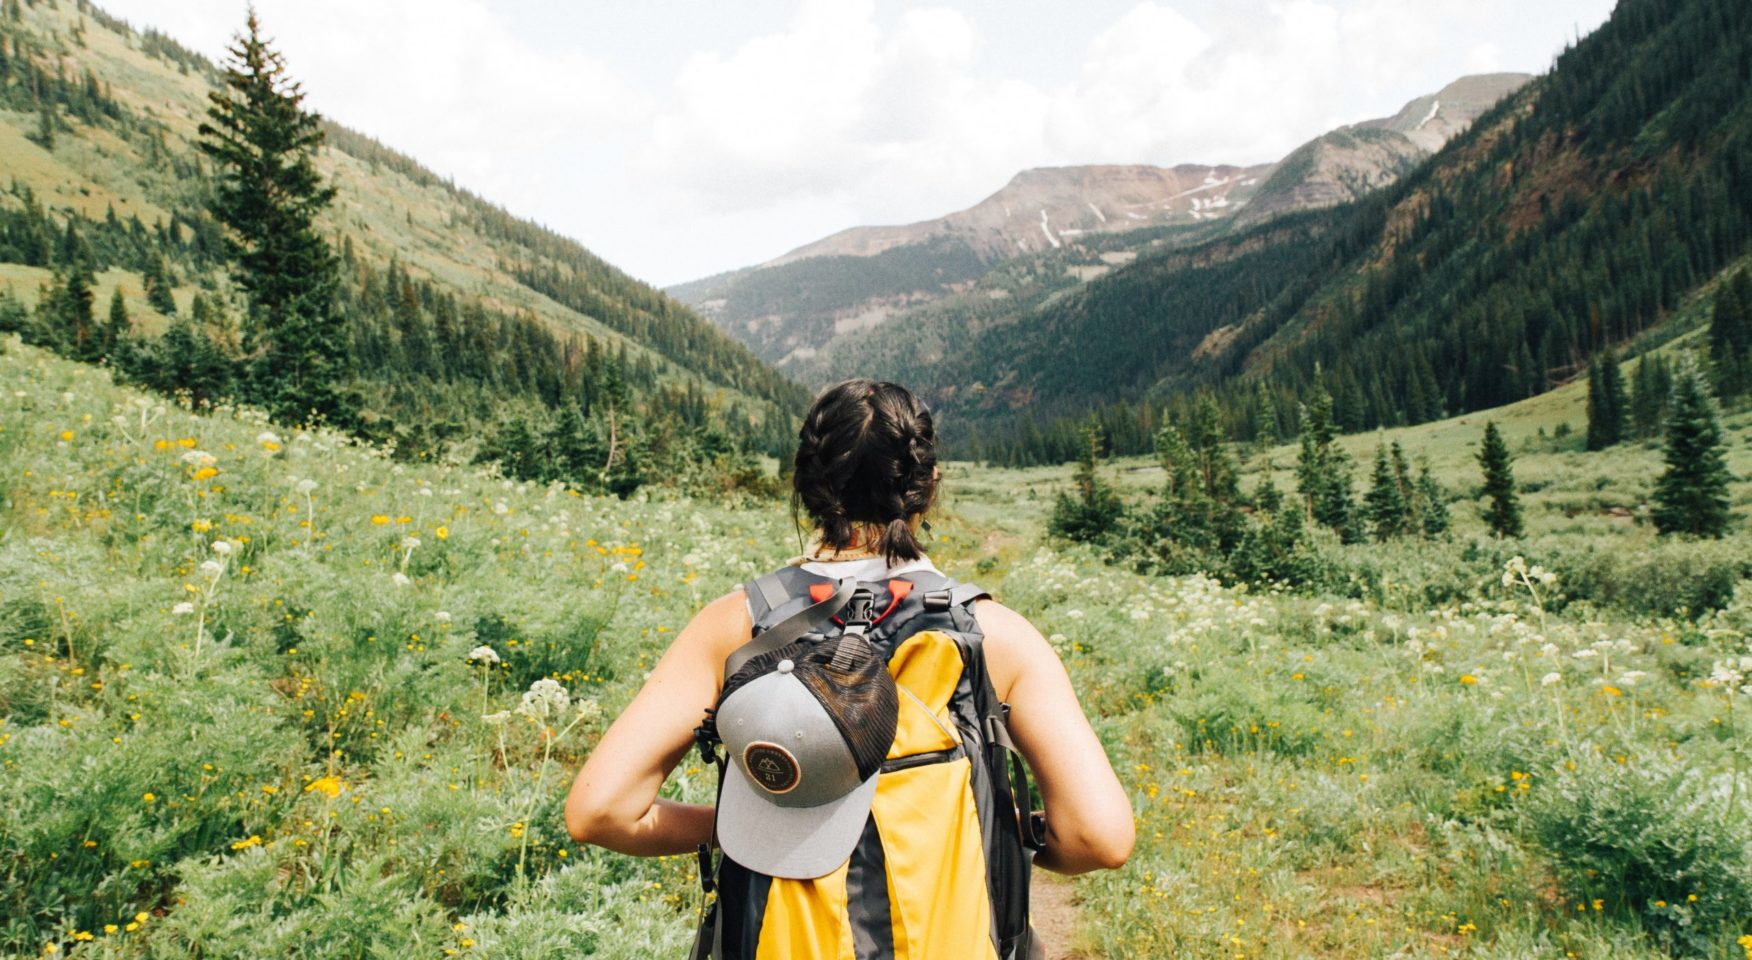 woman hiking with yellow backpack